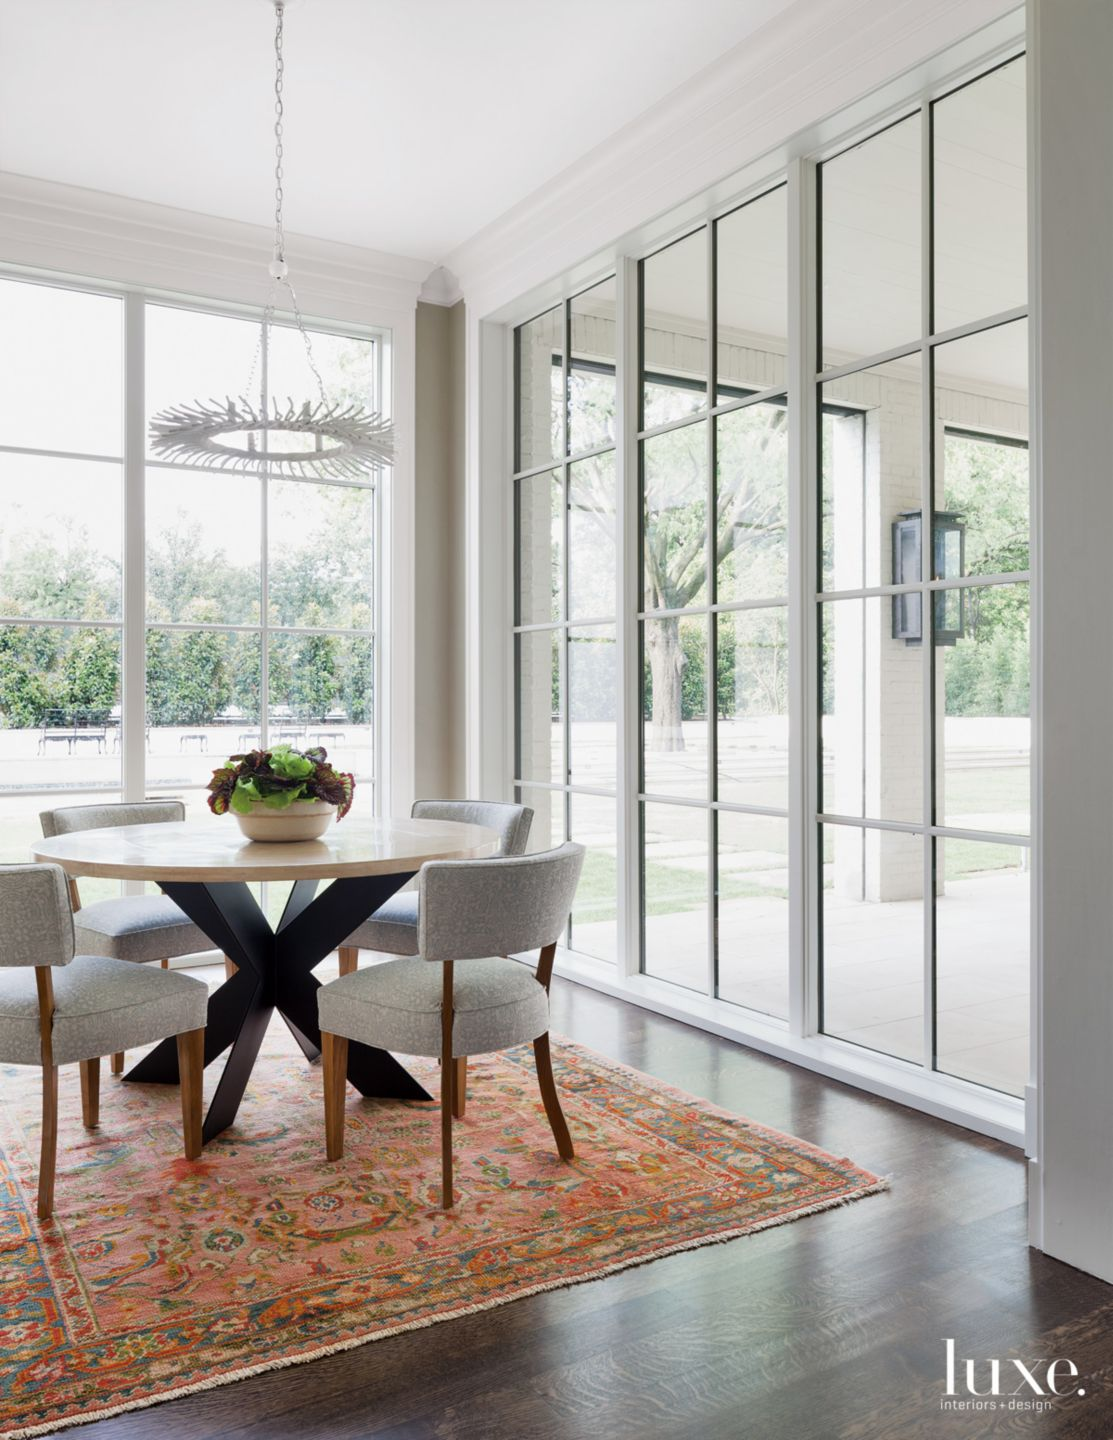 Transitional White Breakfast Area with Walls of Windows